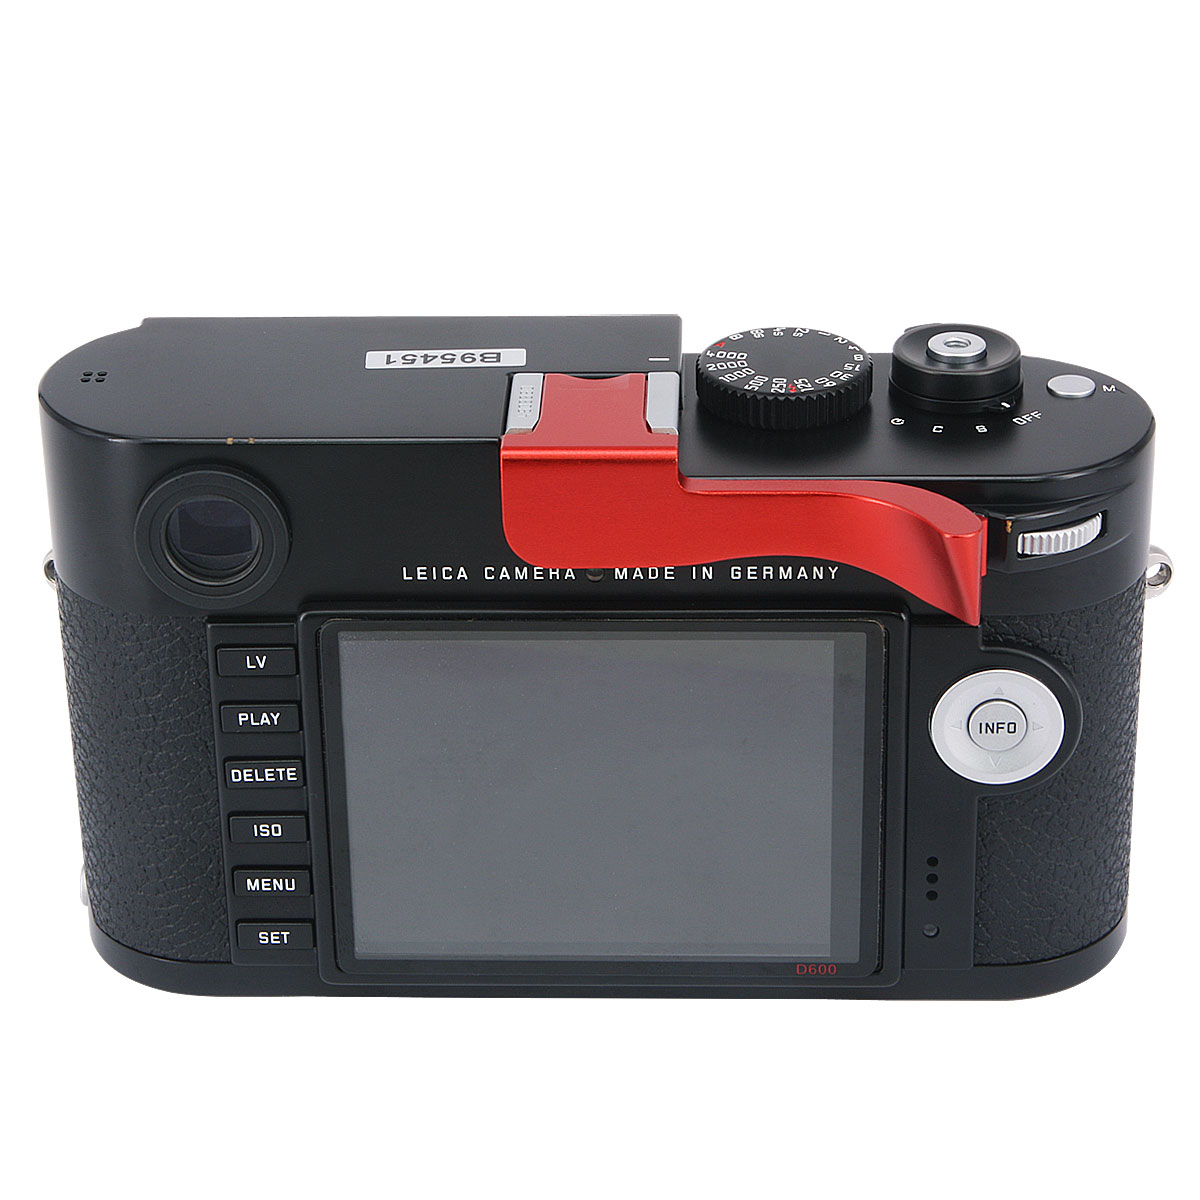 M-D Typ 262 Camera Red Haoge THB-M24R Metal Hot Shoe Thumb Up Rest Hand Grip for Leica M Typ240 M240 M-P Typ 240 M240P M Typ262 M262